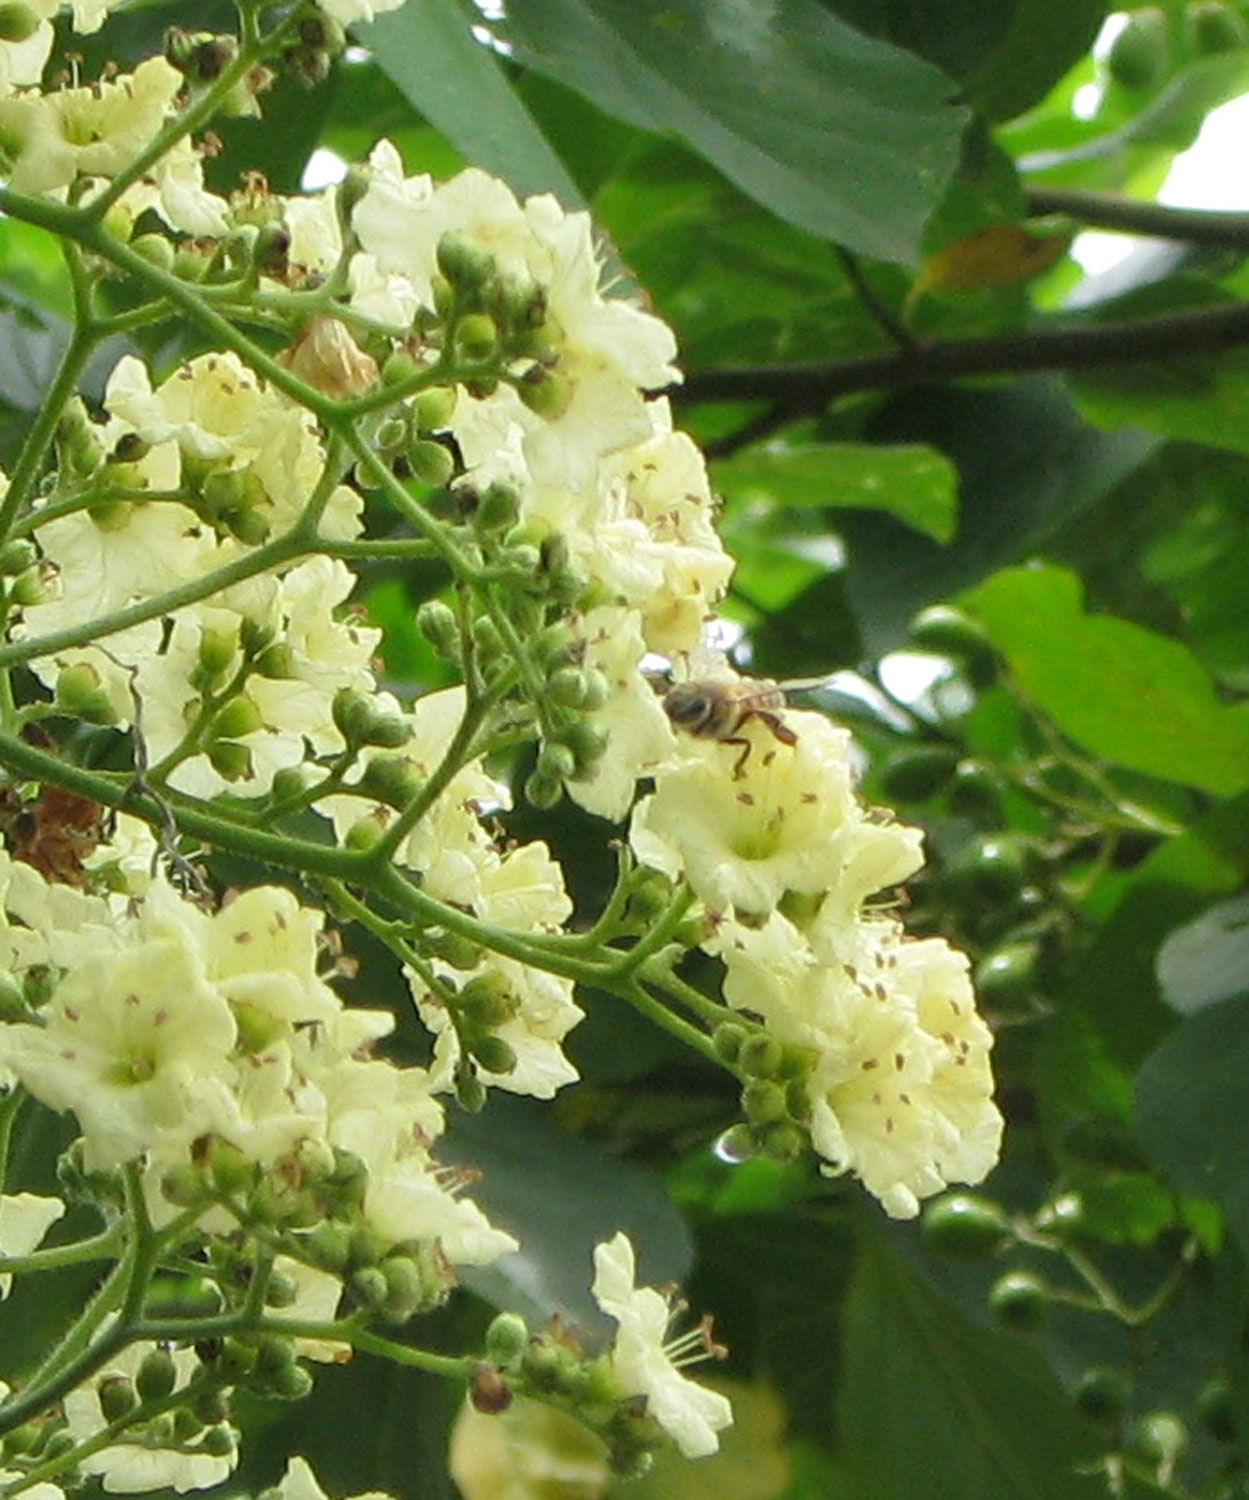 A honeybee in the flowers above the well